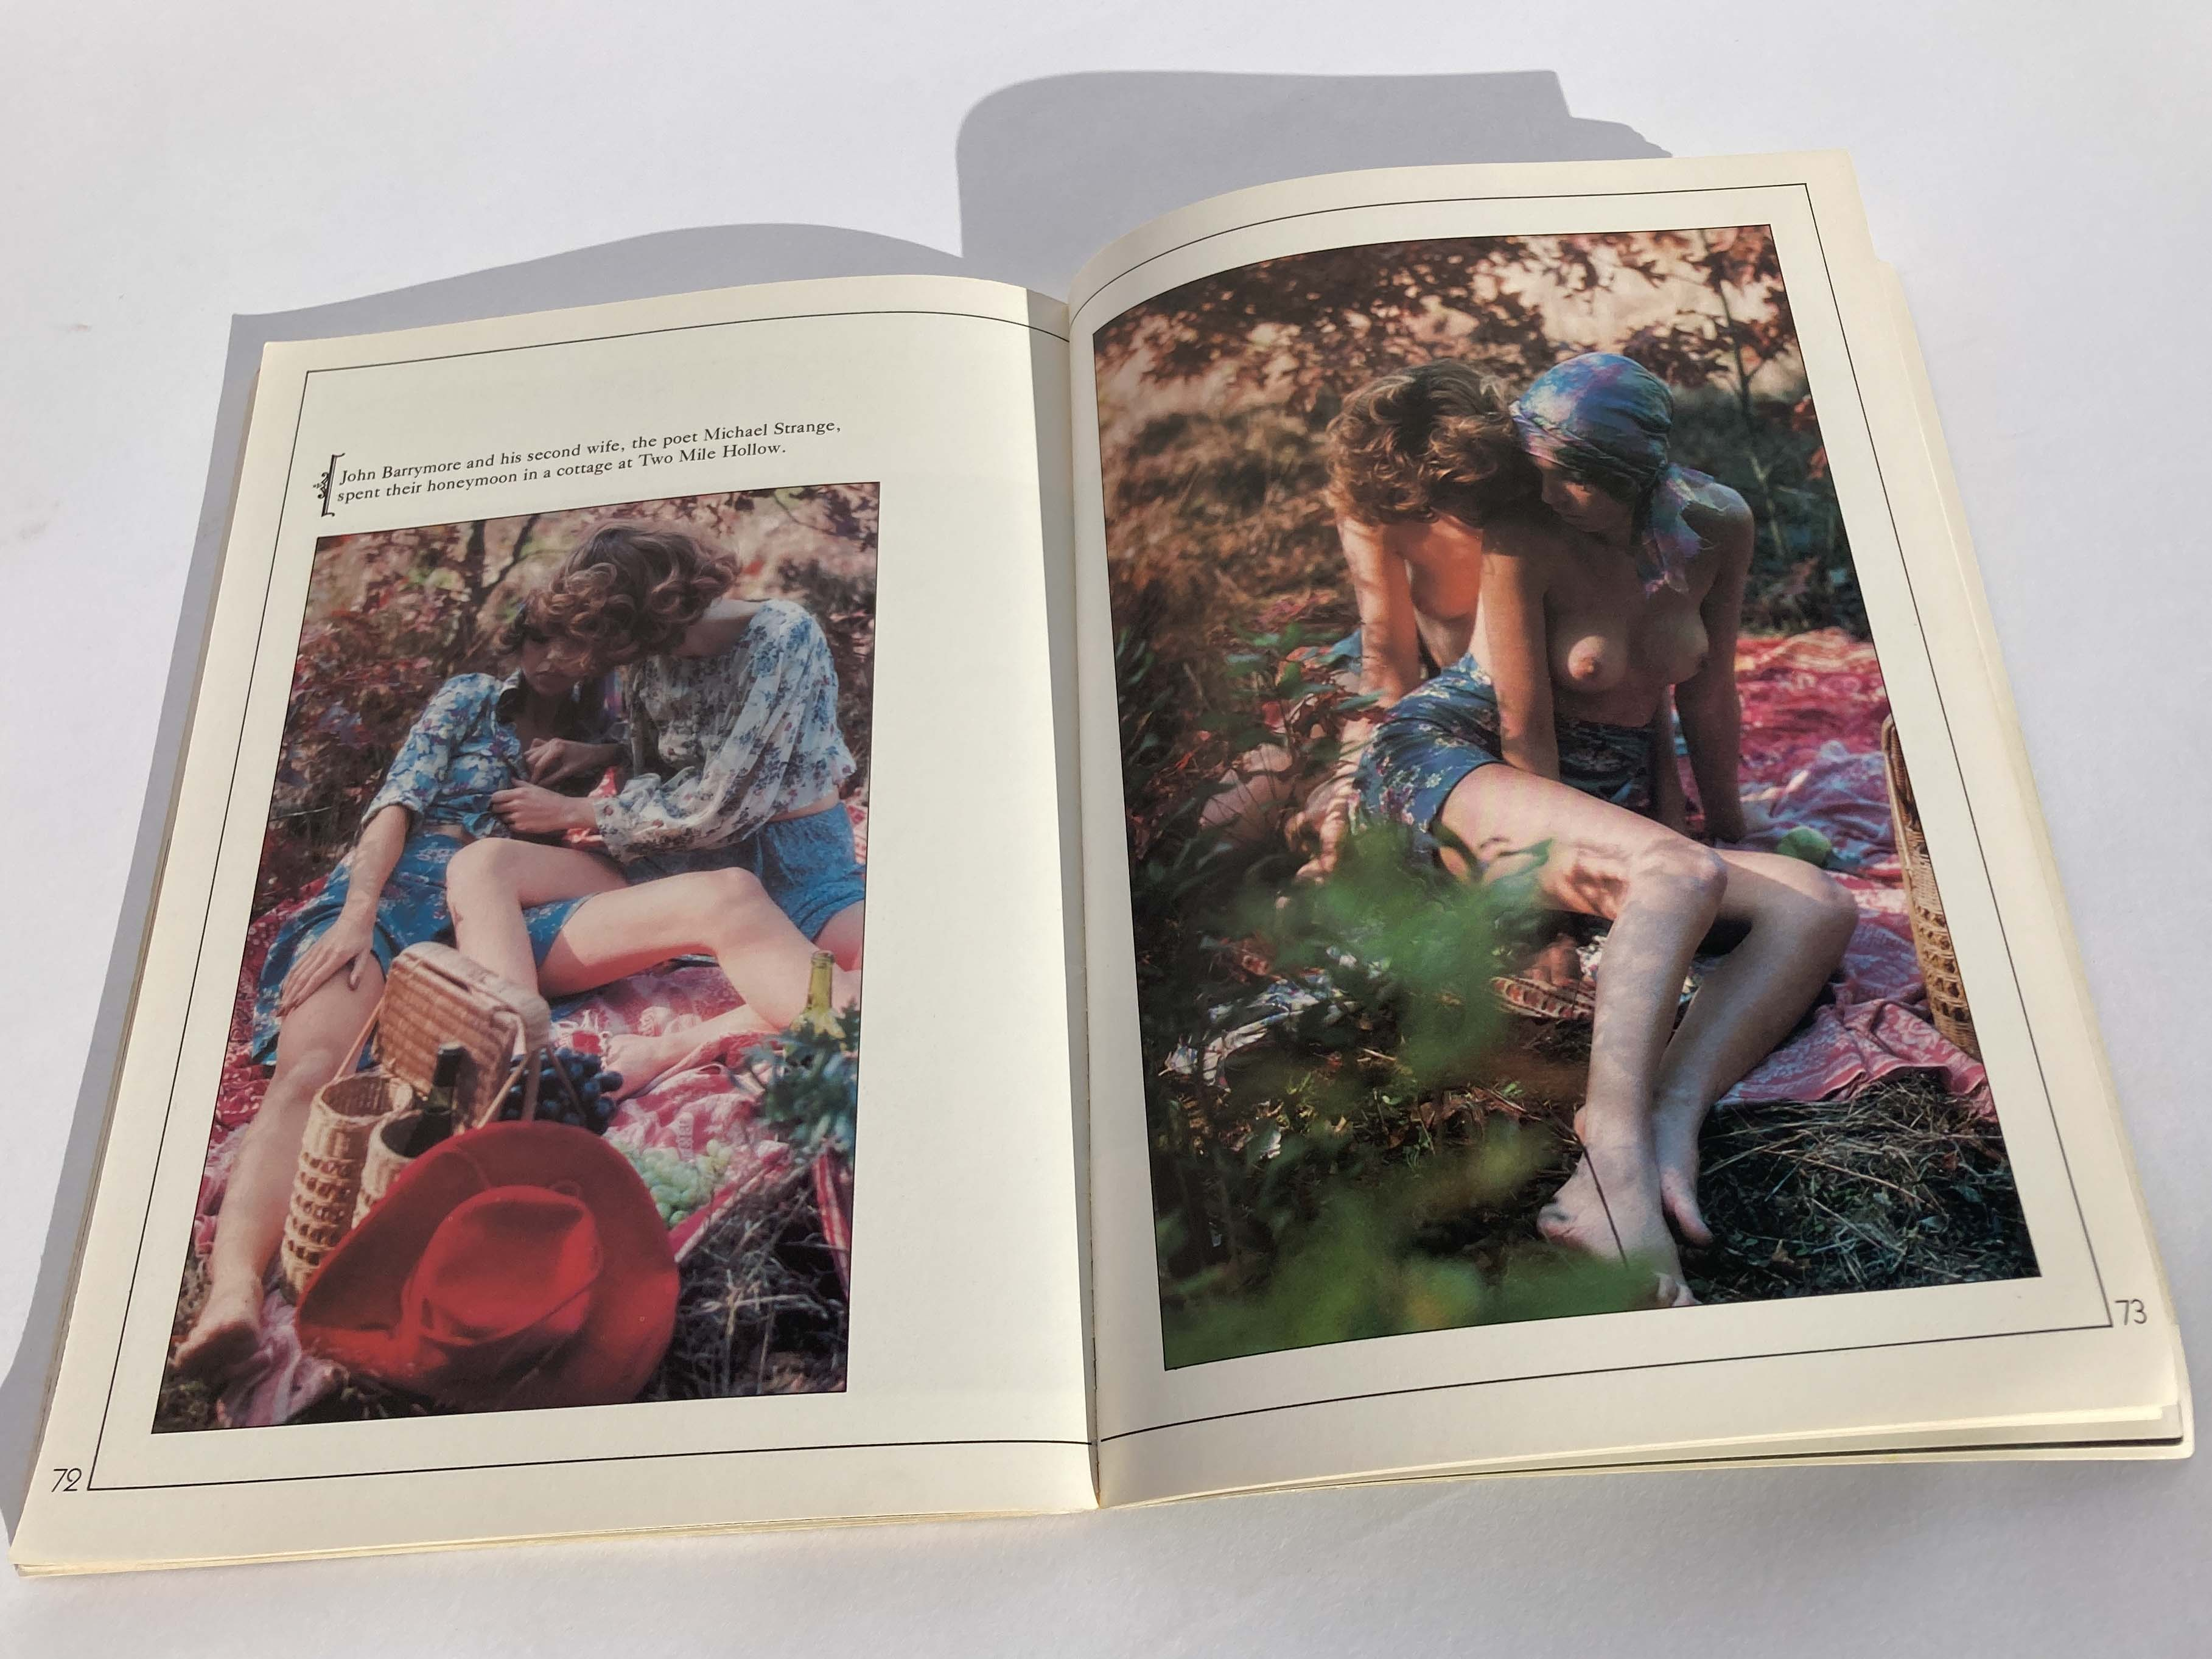 BOOK - J. Frederick Smith: Sappho by the sea, an illustrated guide to the Hamptons